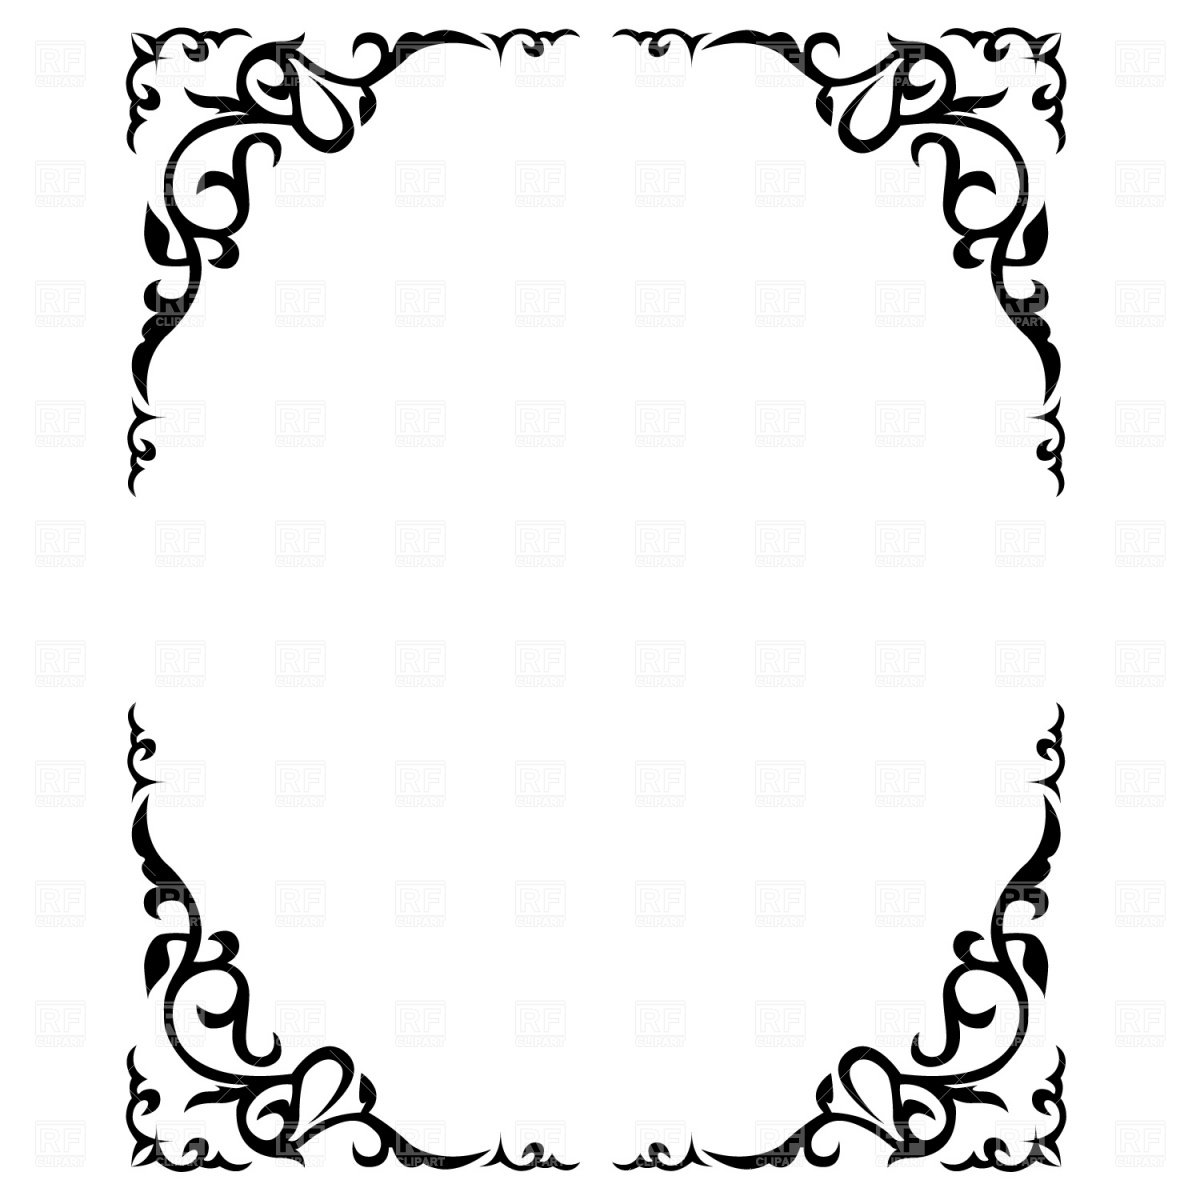 Free Wedding Border Clipart Free Download Clip Art Free Clip.